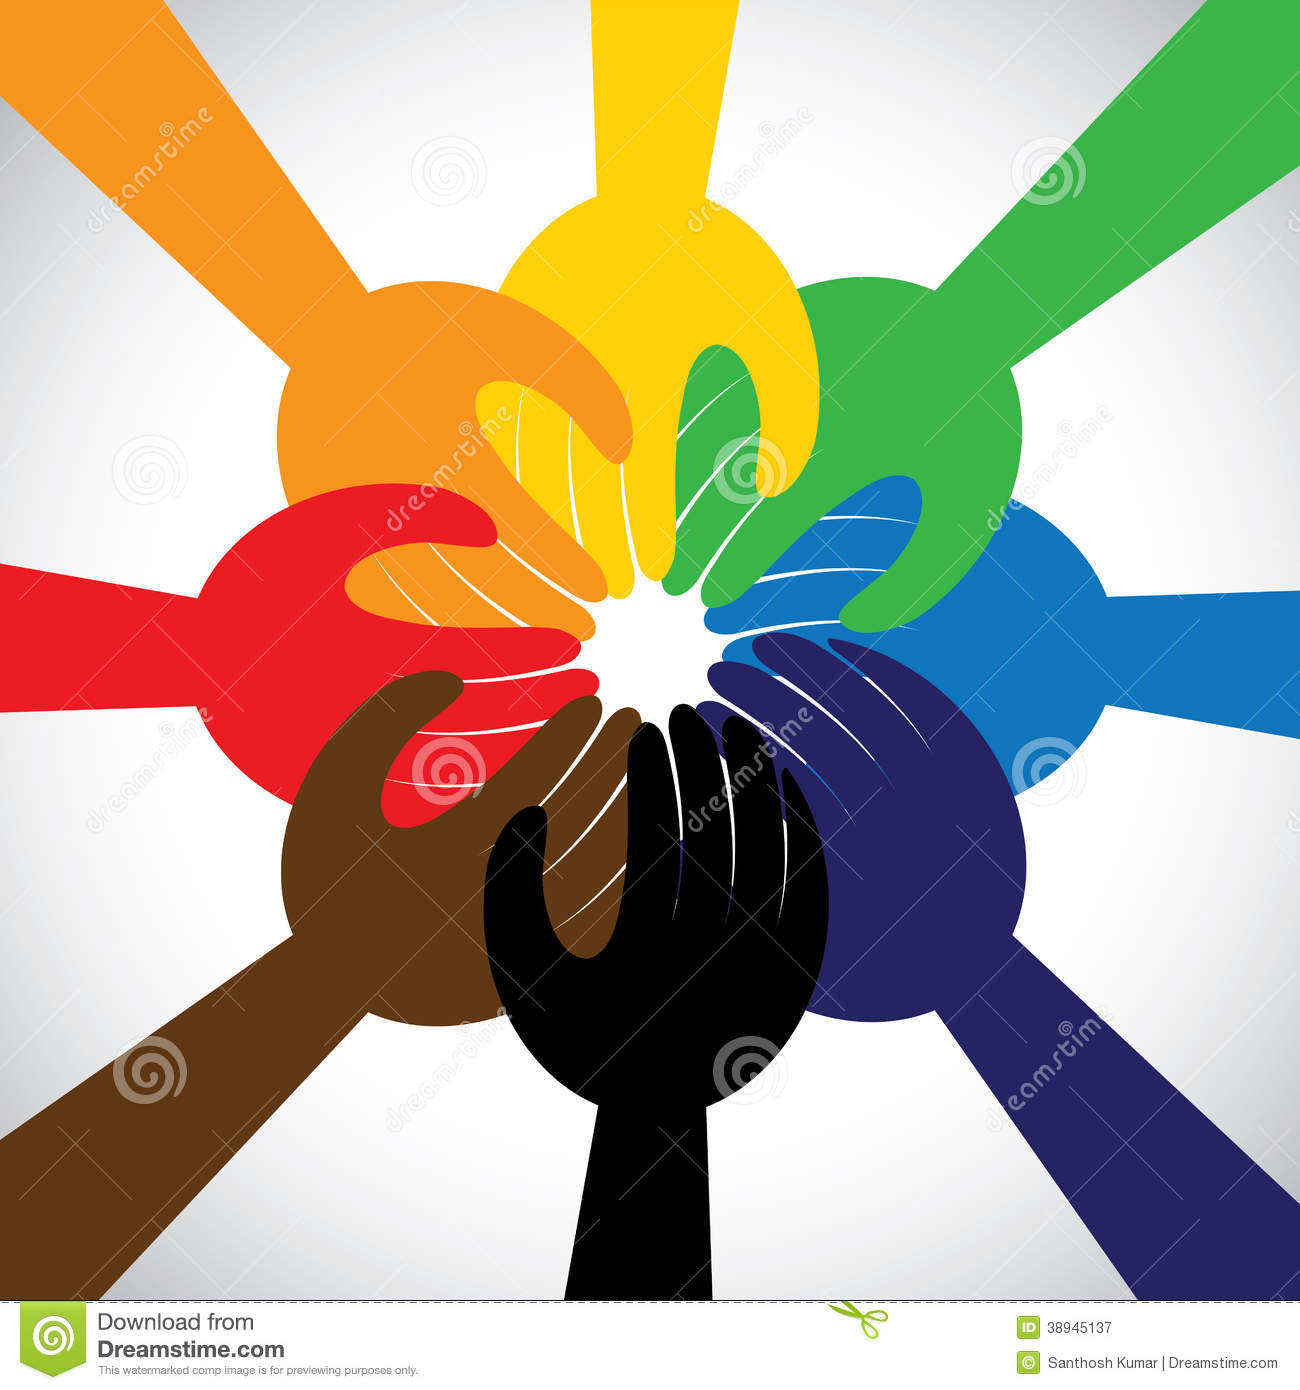 Hands Taking Pledge, Promise - Concept Vector Stock Vector ...